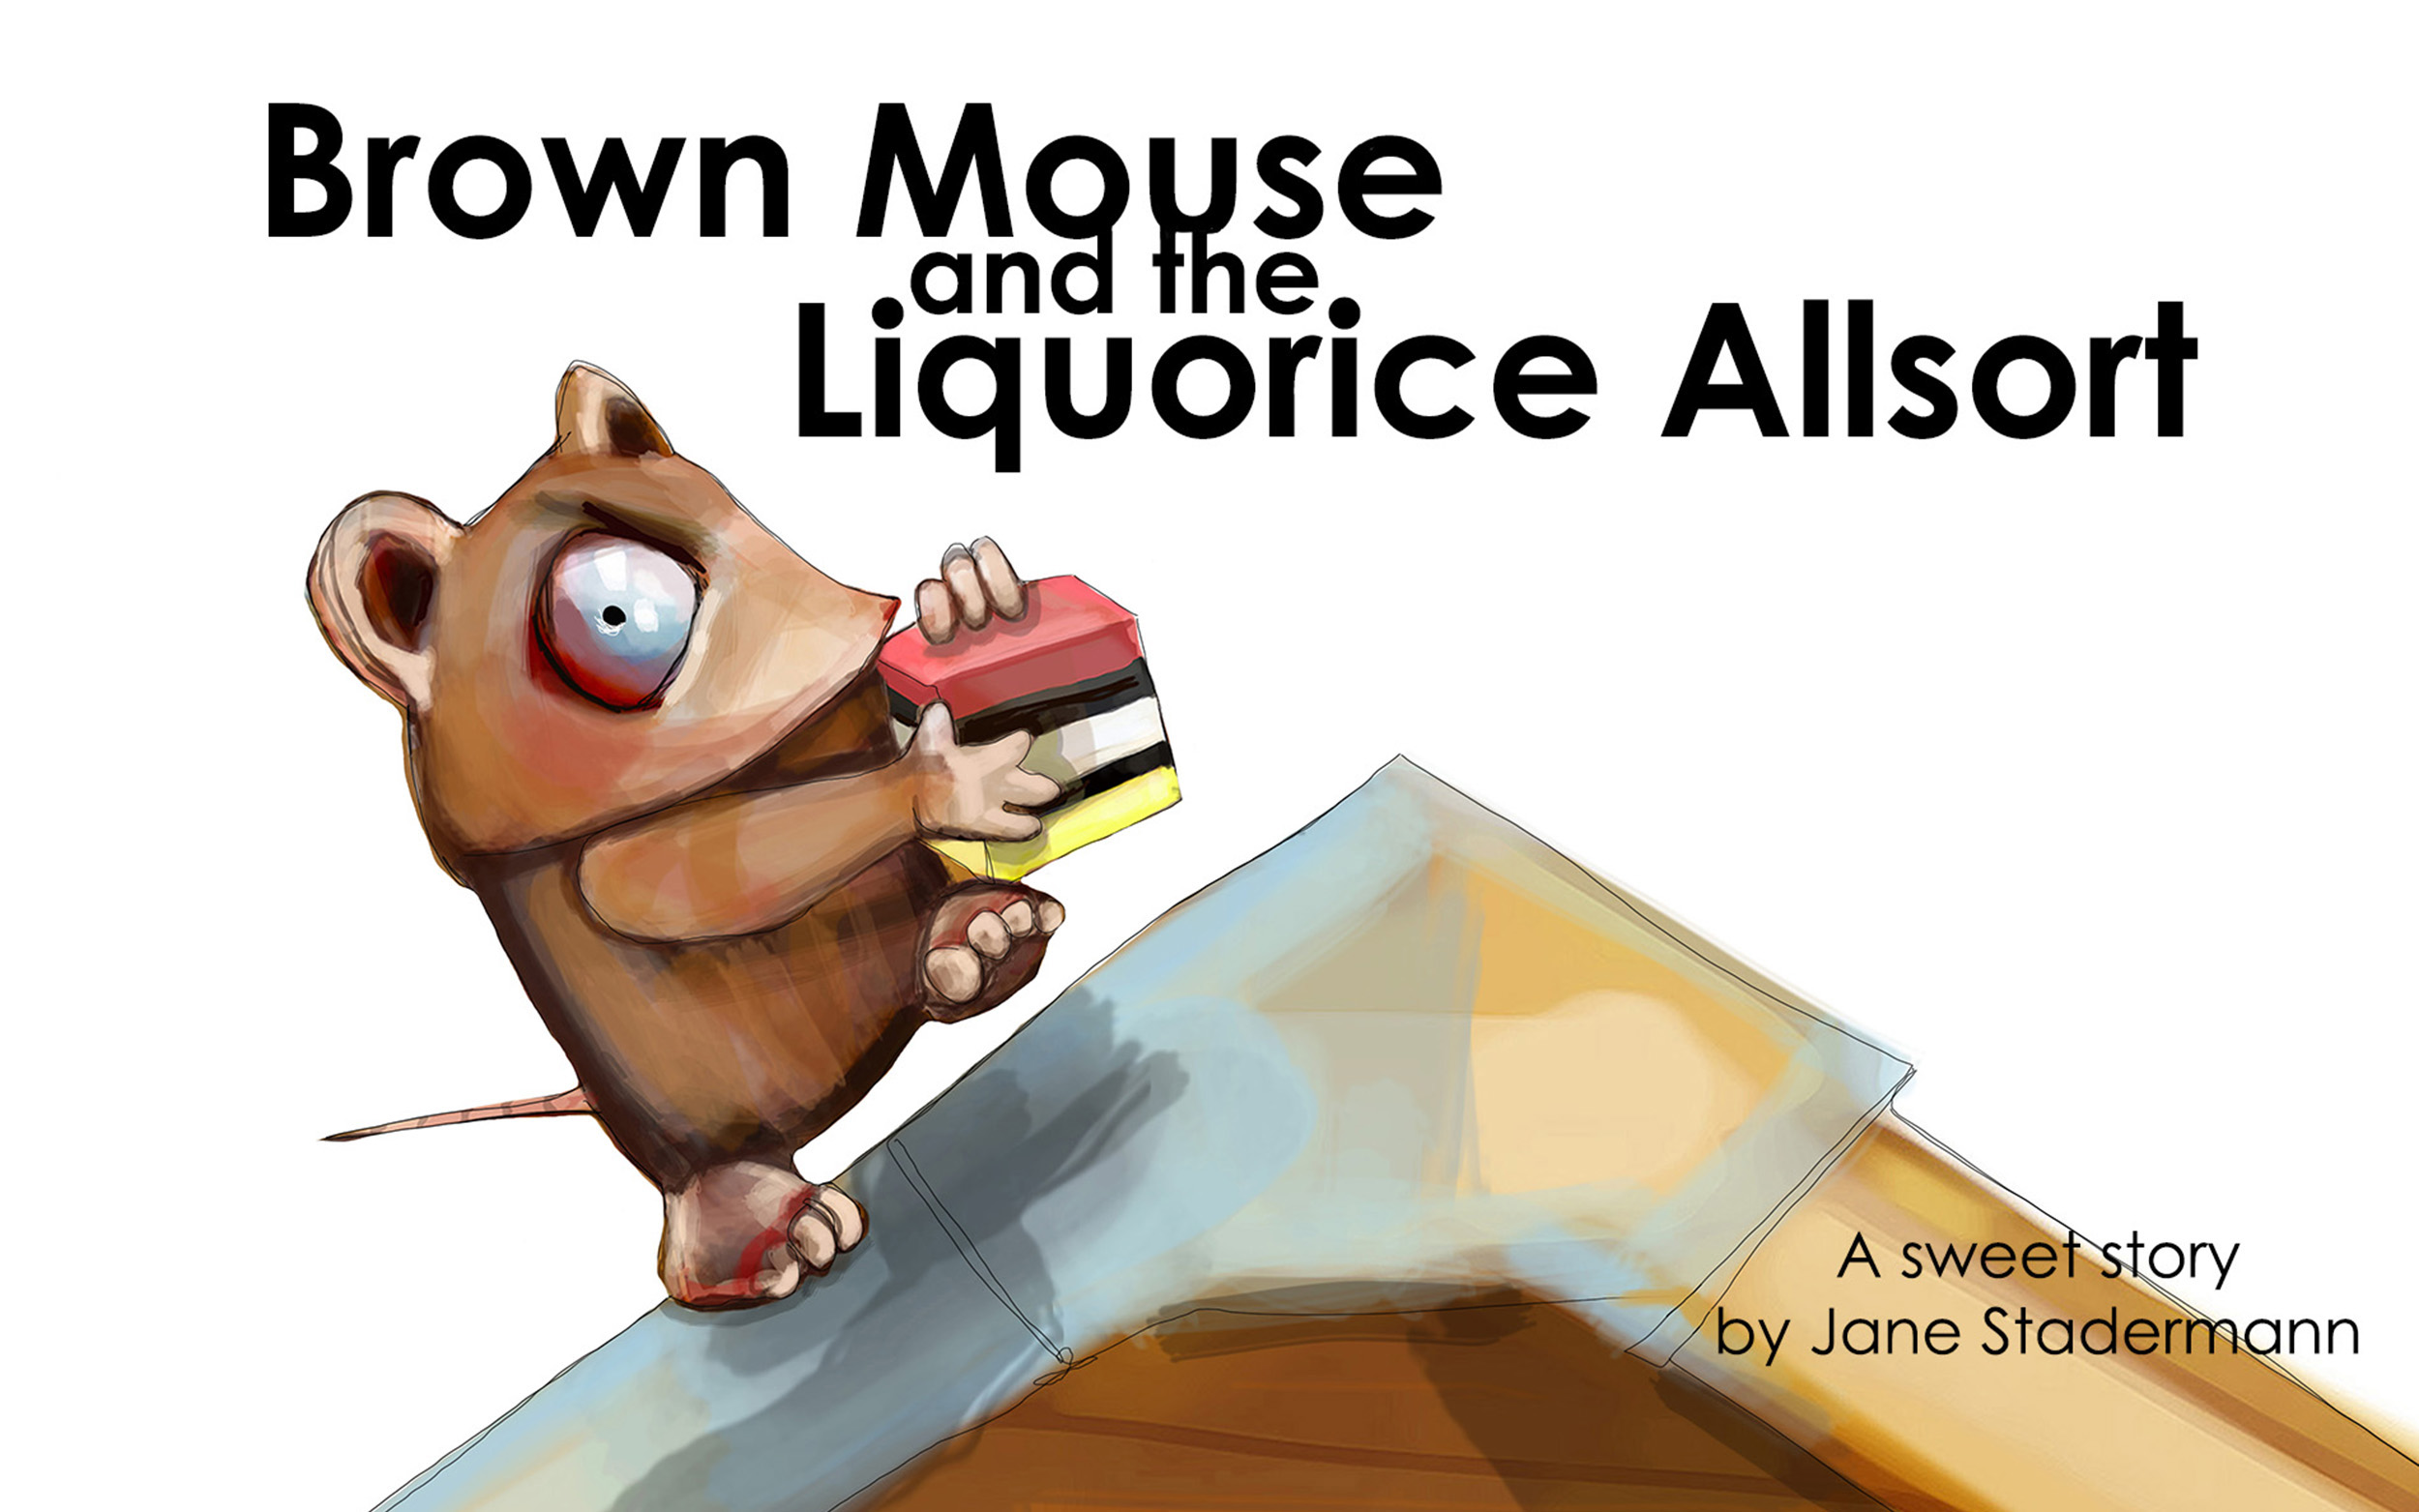 Brown Mouse and the Liquorice Allsort.jpg